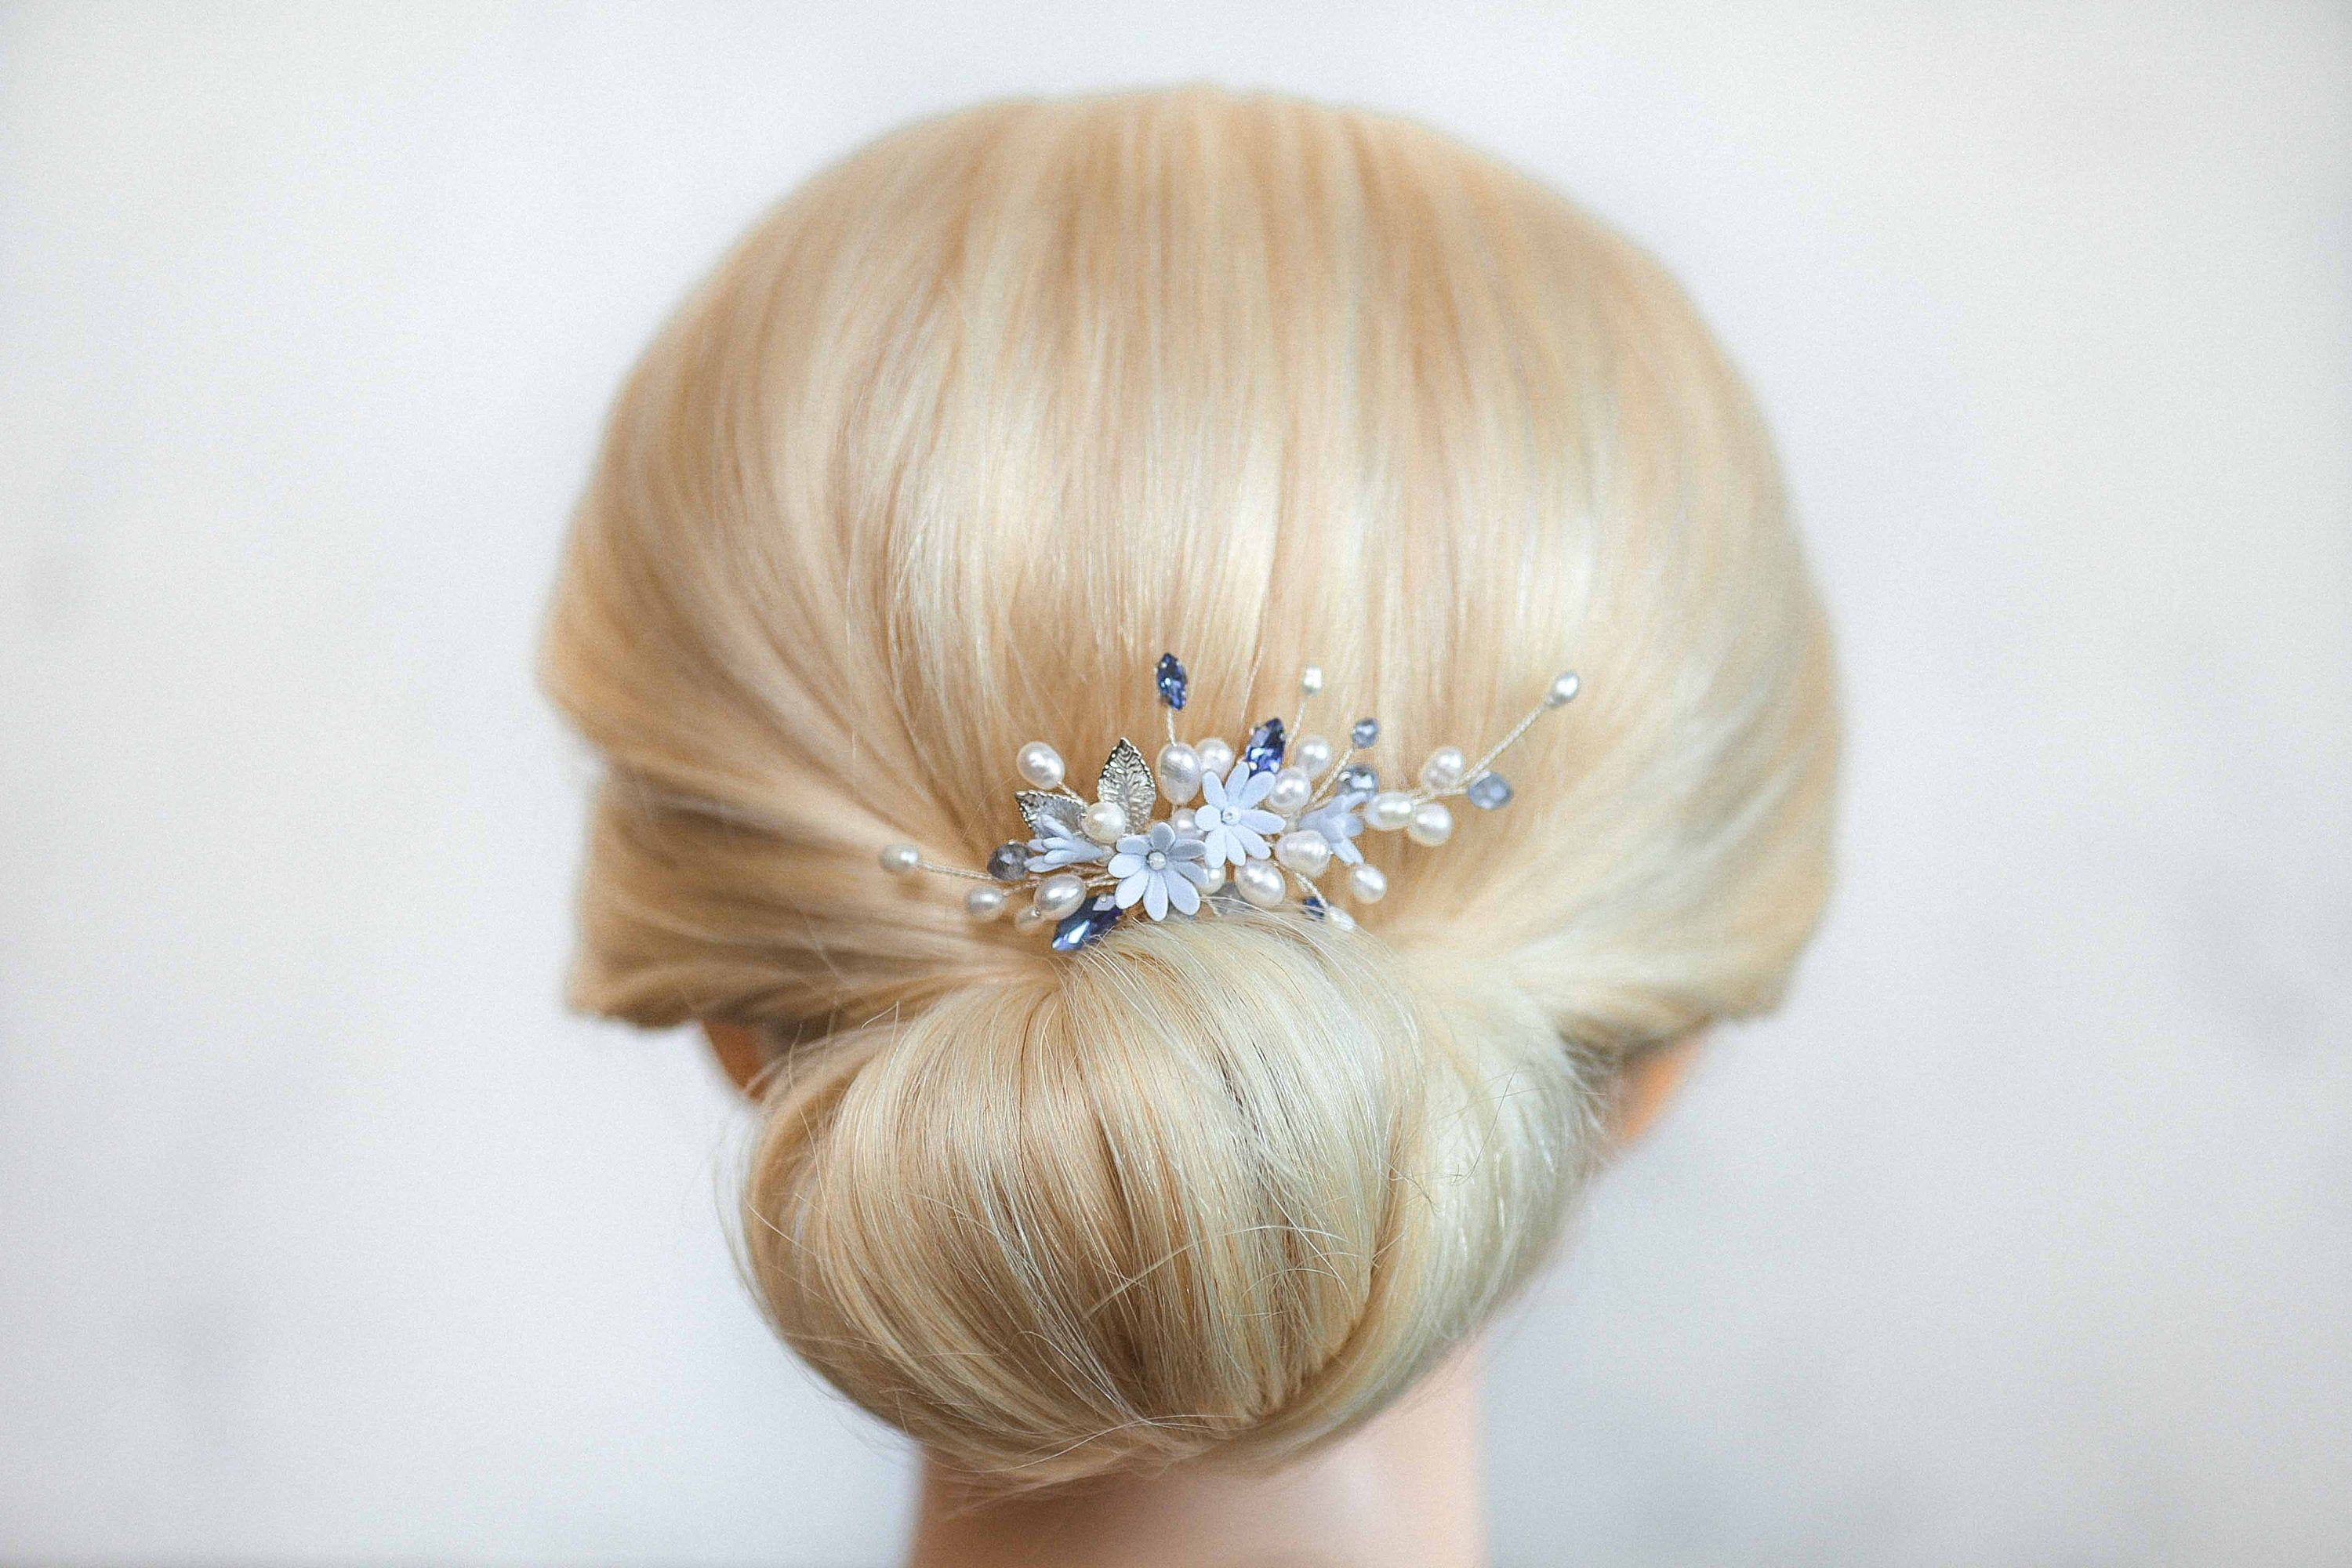 Silver hair pin Forget me not head pin Pearl hair piece Something blue floral headpiece Sapphire hairpiece Light blue head piece with flower